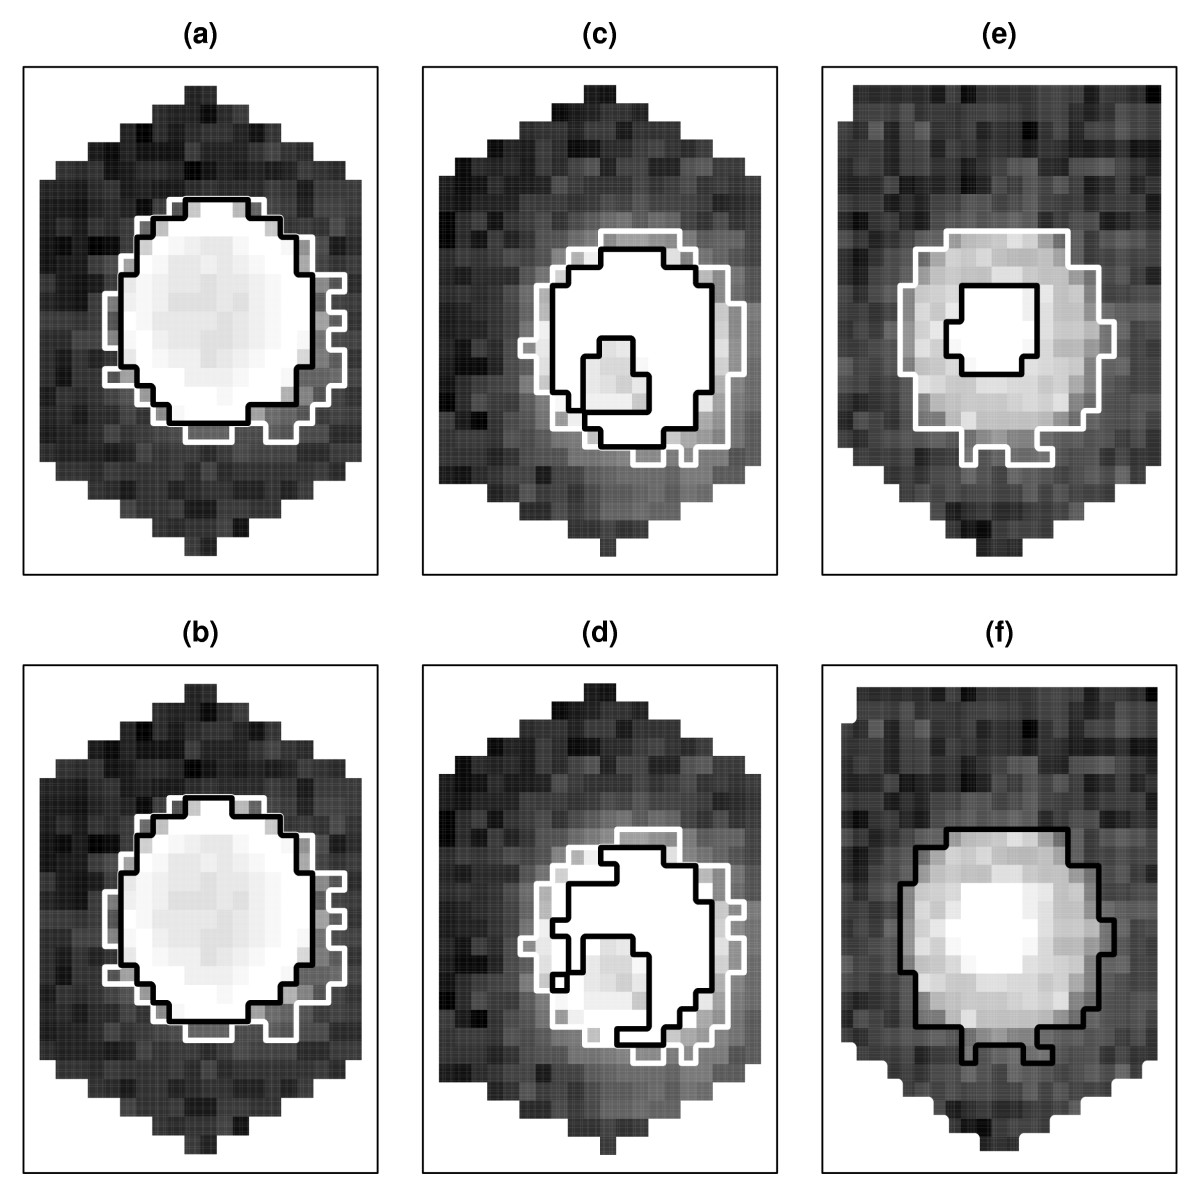 https://static-content.springer.com/image/art%3A10.1186%2F1471-2105-12-462/MediaObjects/12859_2011_Article_5015_Fig3_HTML.jpg